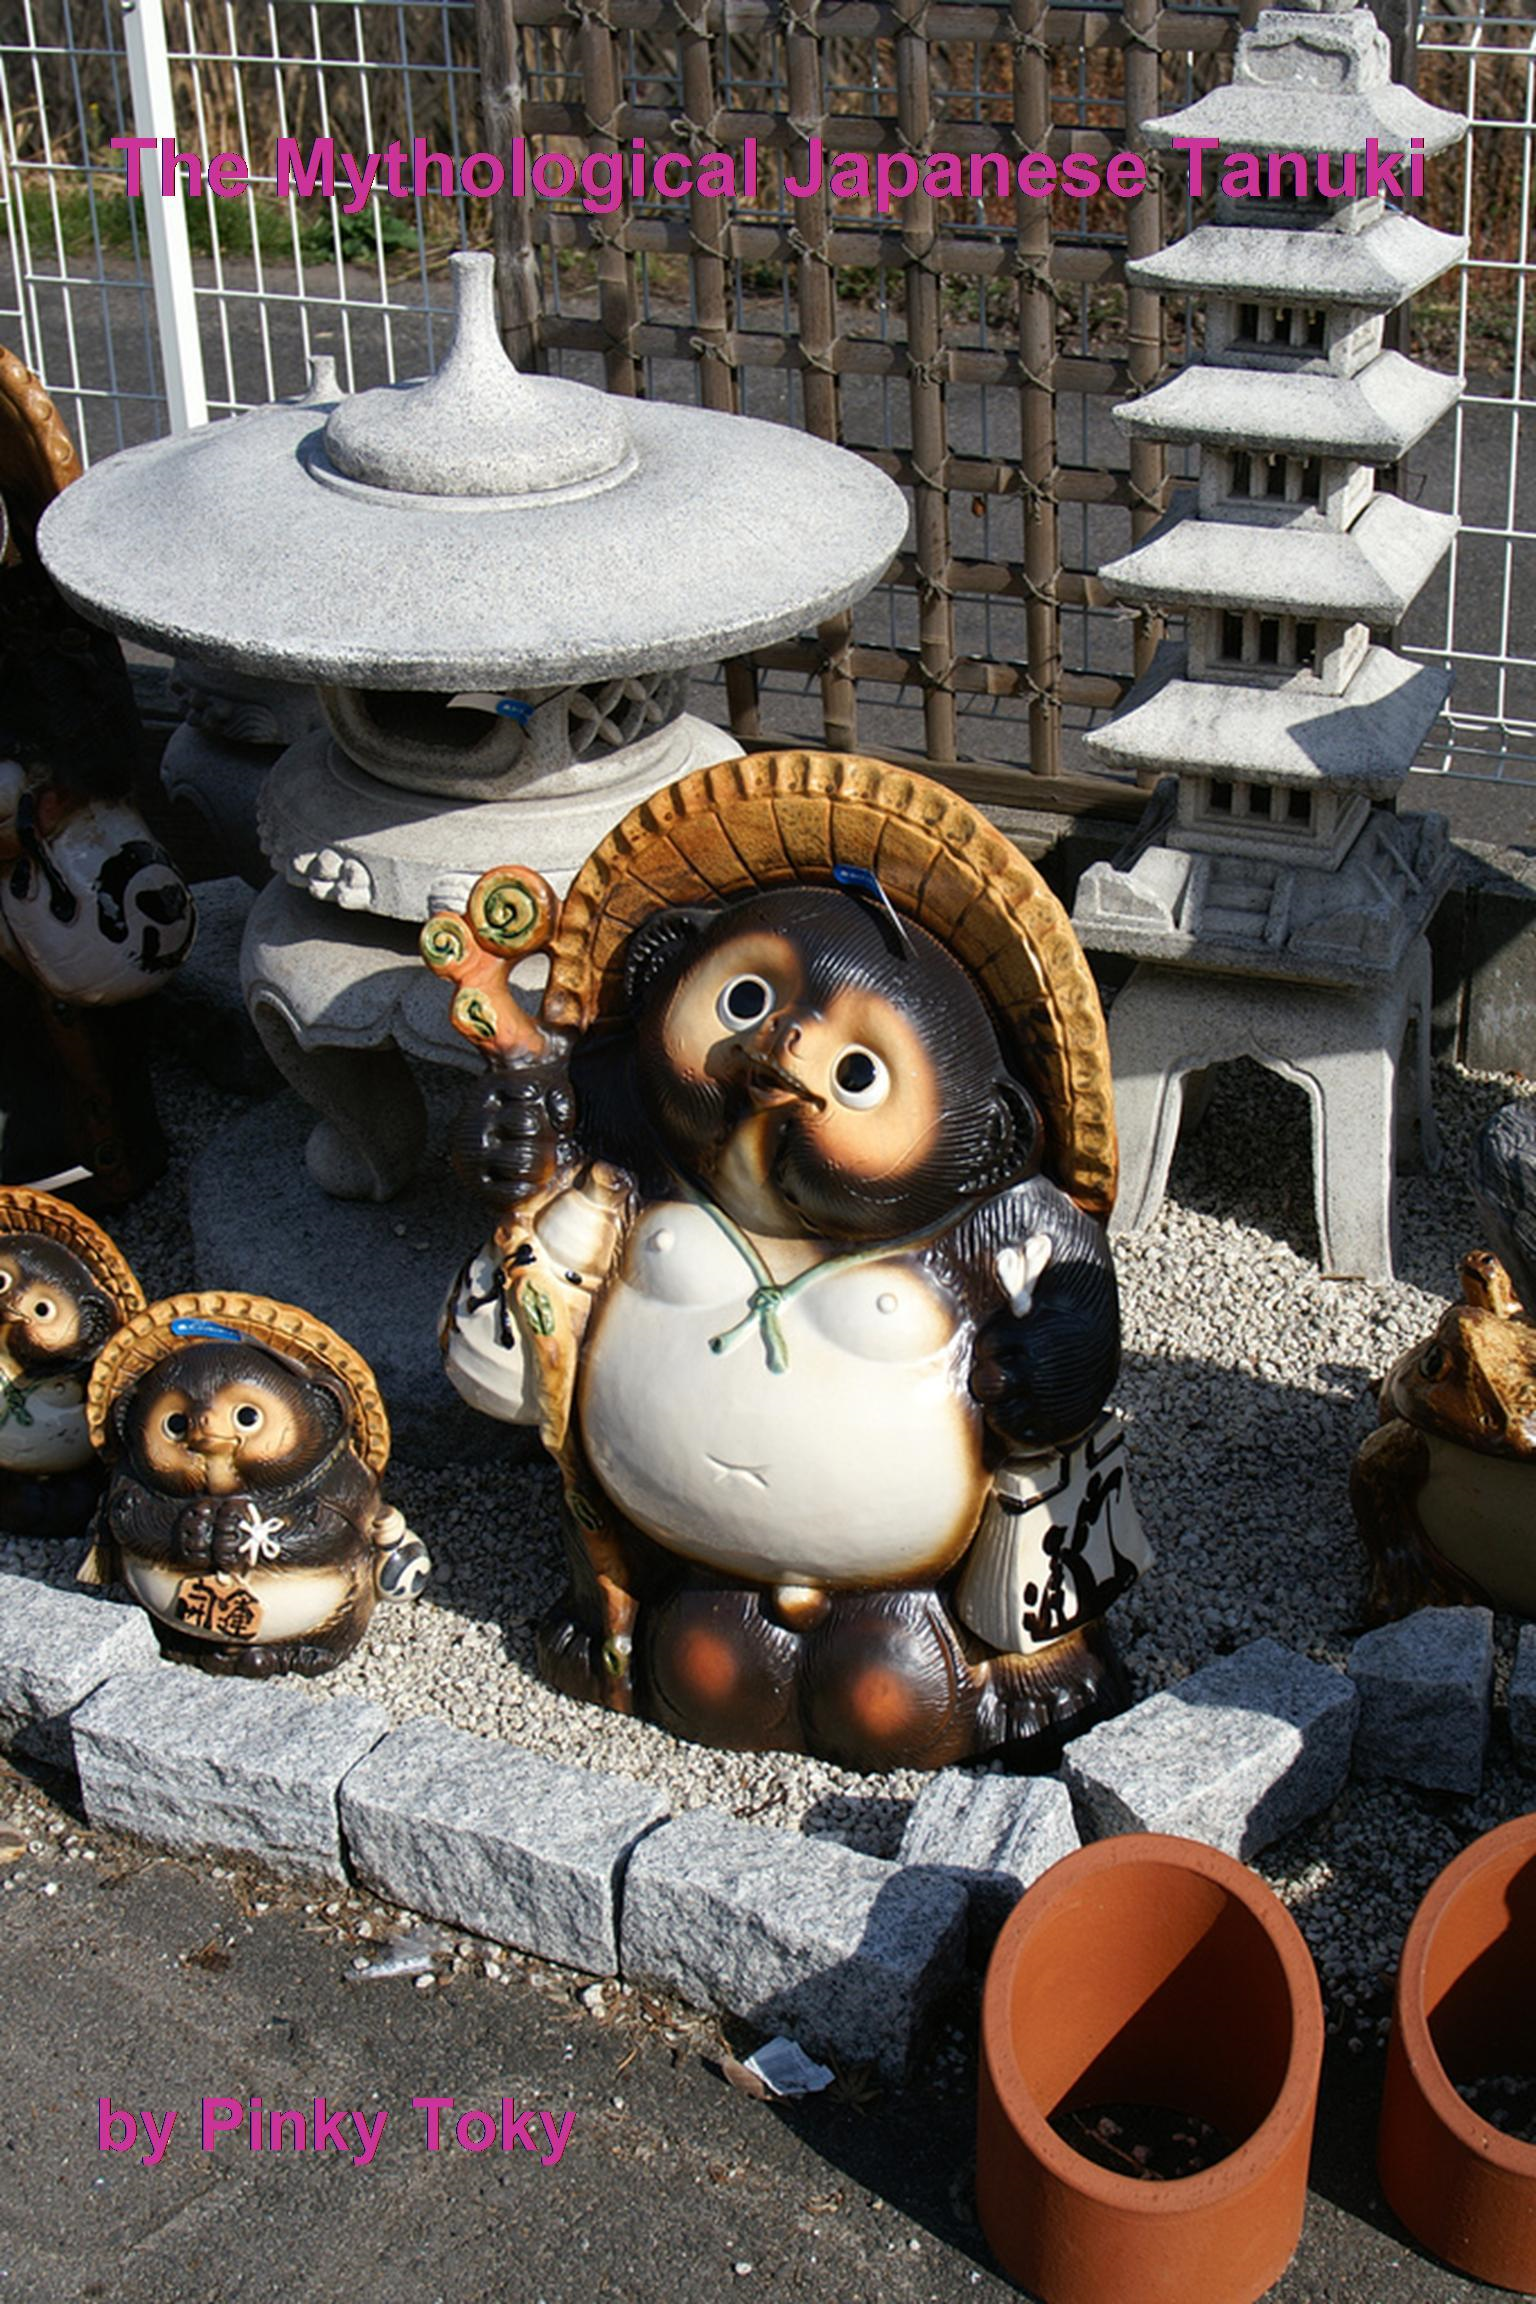 The Mythological Japanese Tanuki